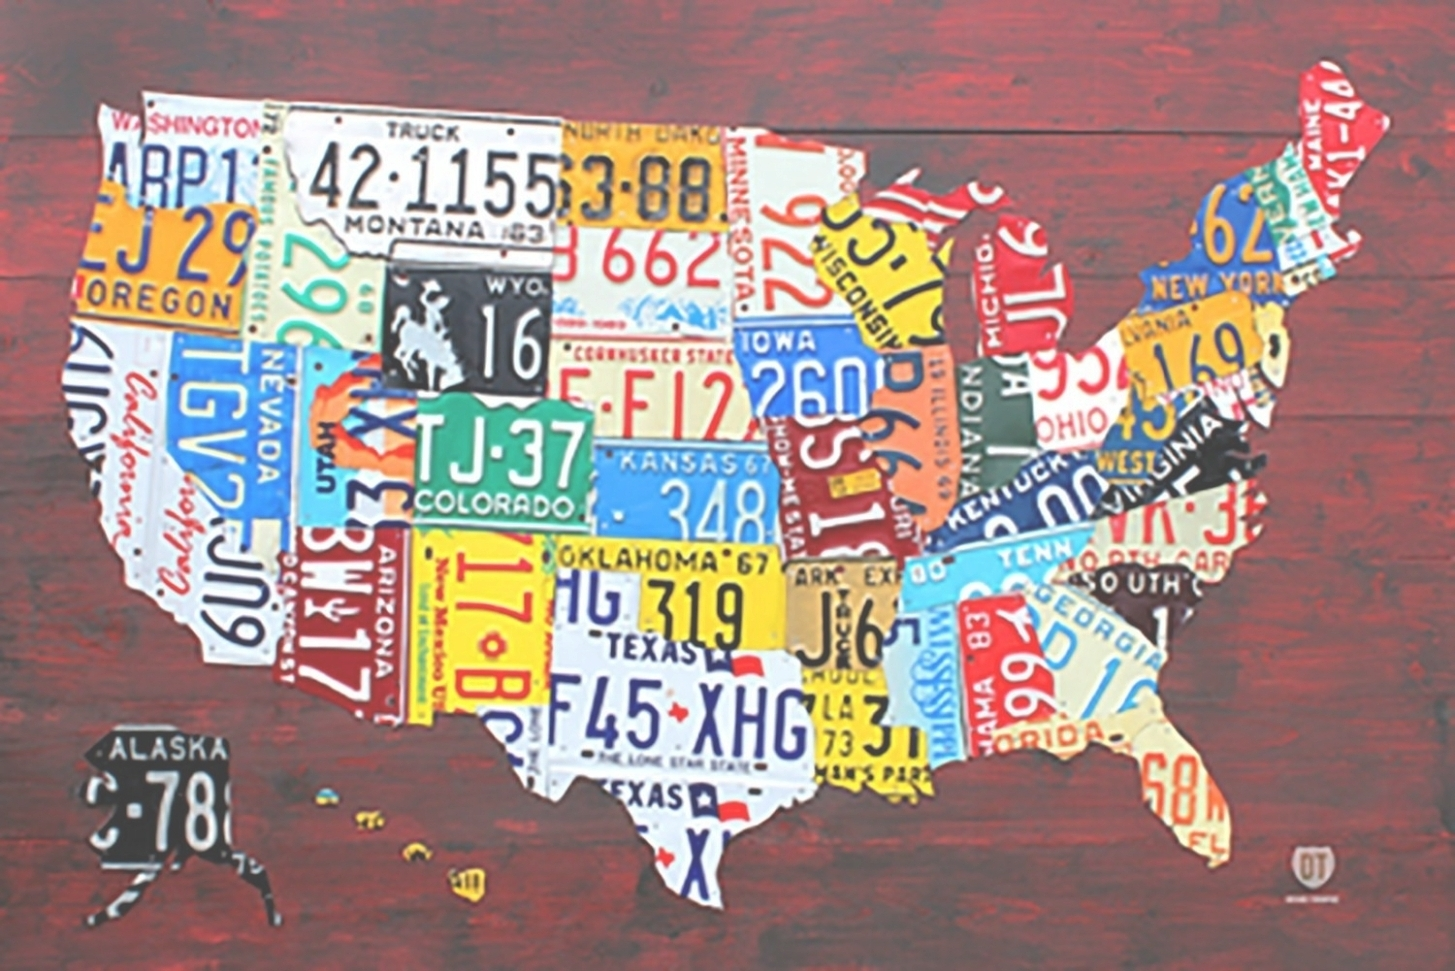 License Plate Map Wall Art Inside Latest United States License Plate Map Poster 45 Ideas Of License Plate Map (View 10 of 15)